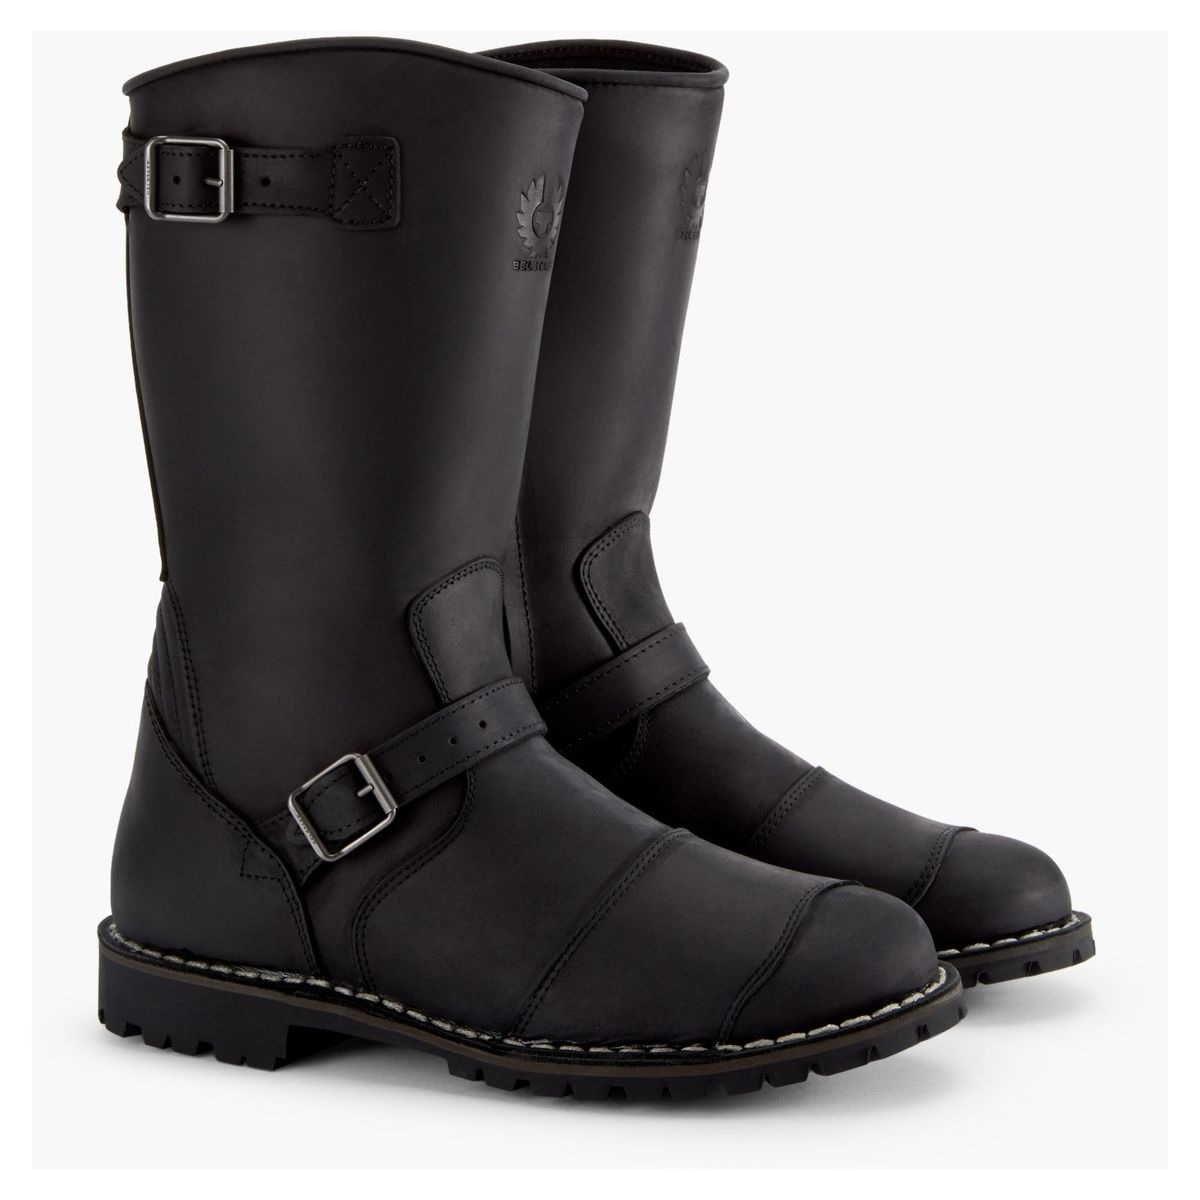 Belstaff Endurance Boots In Black Side View